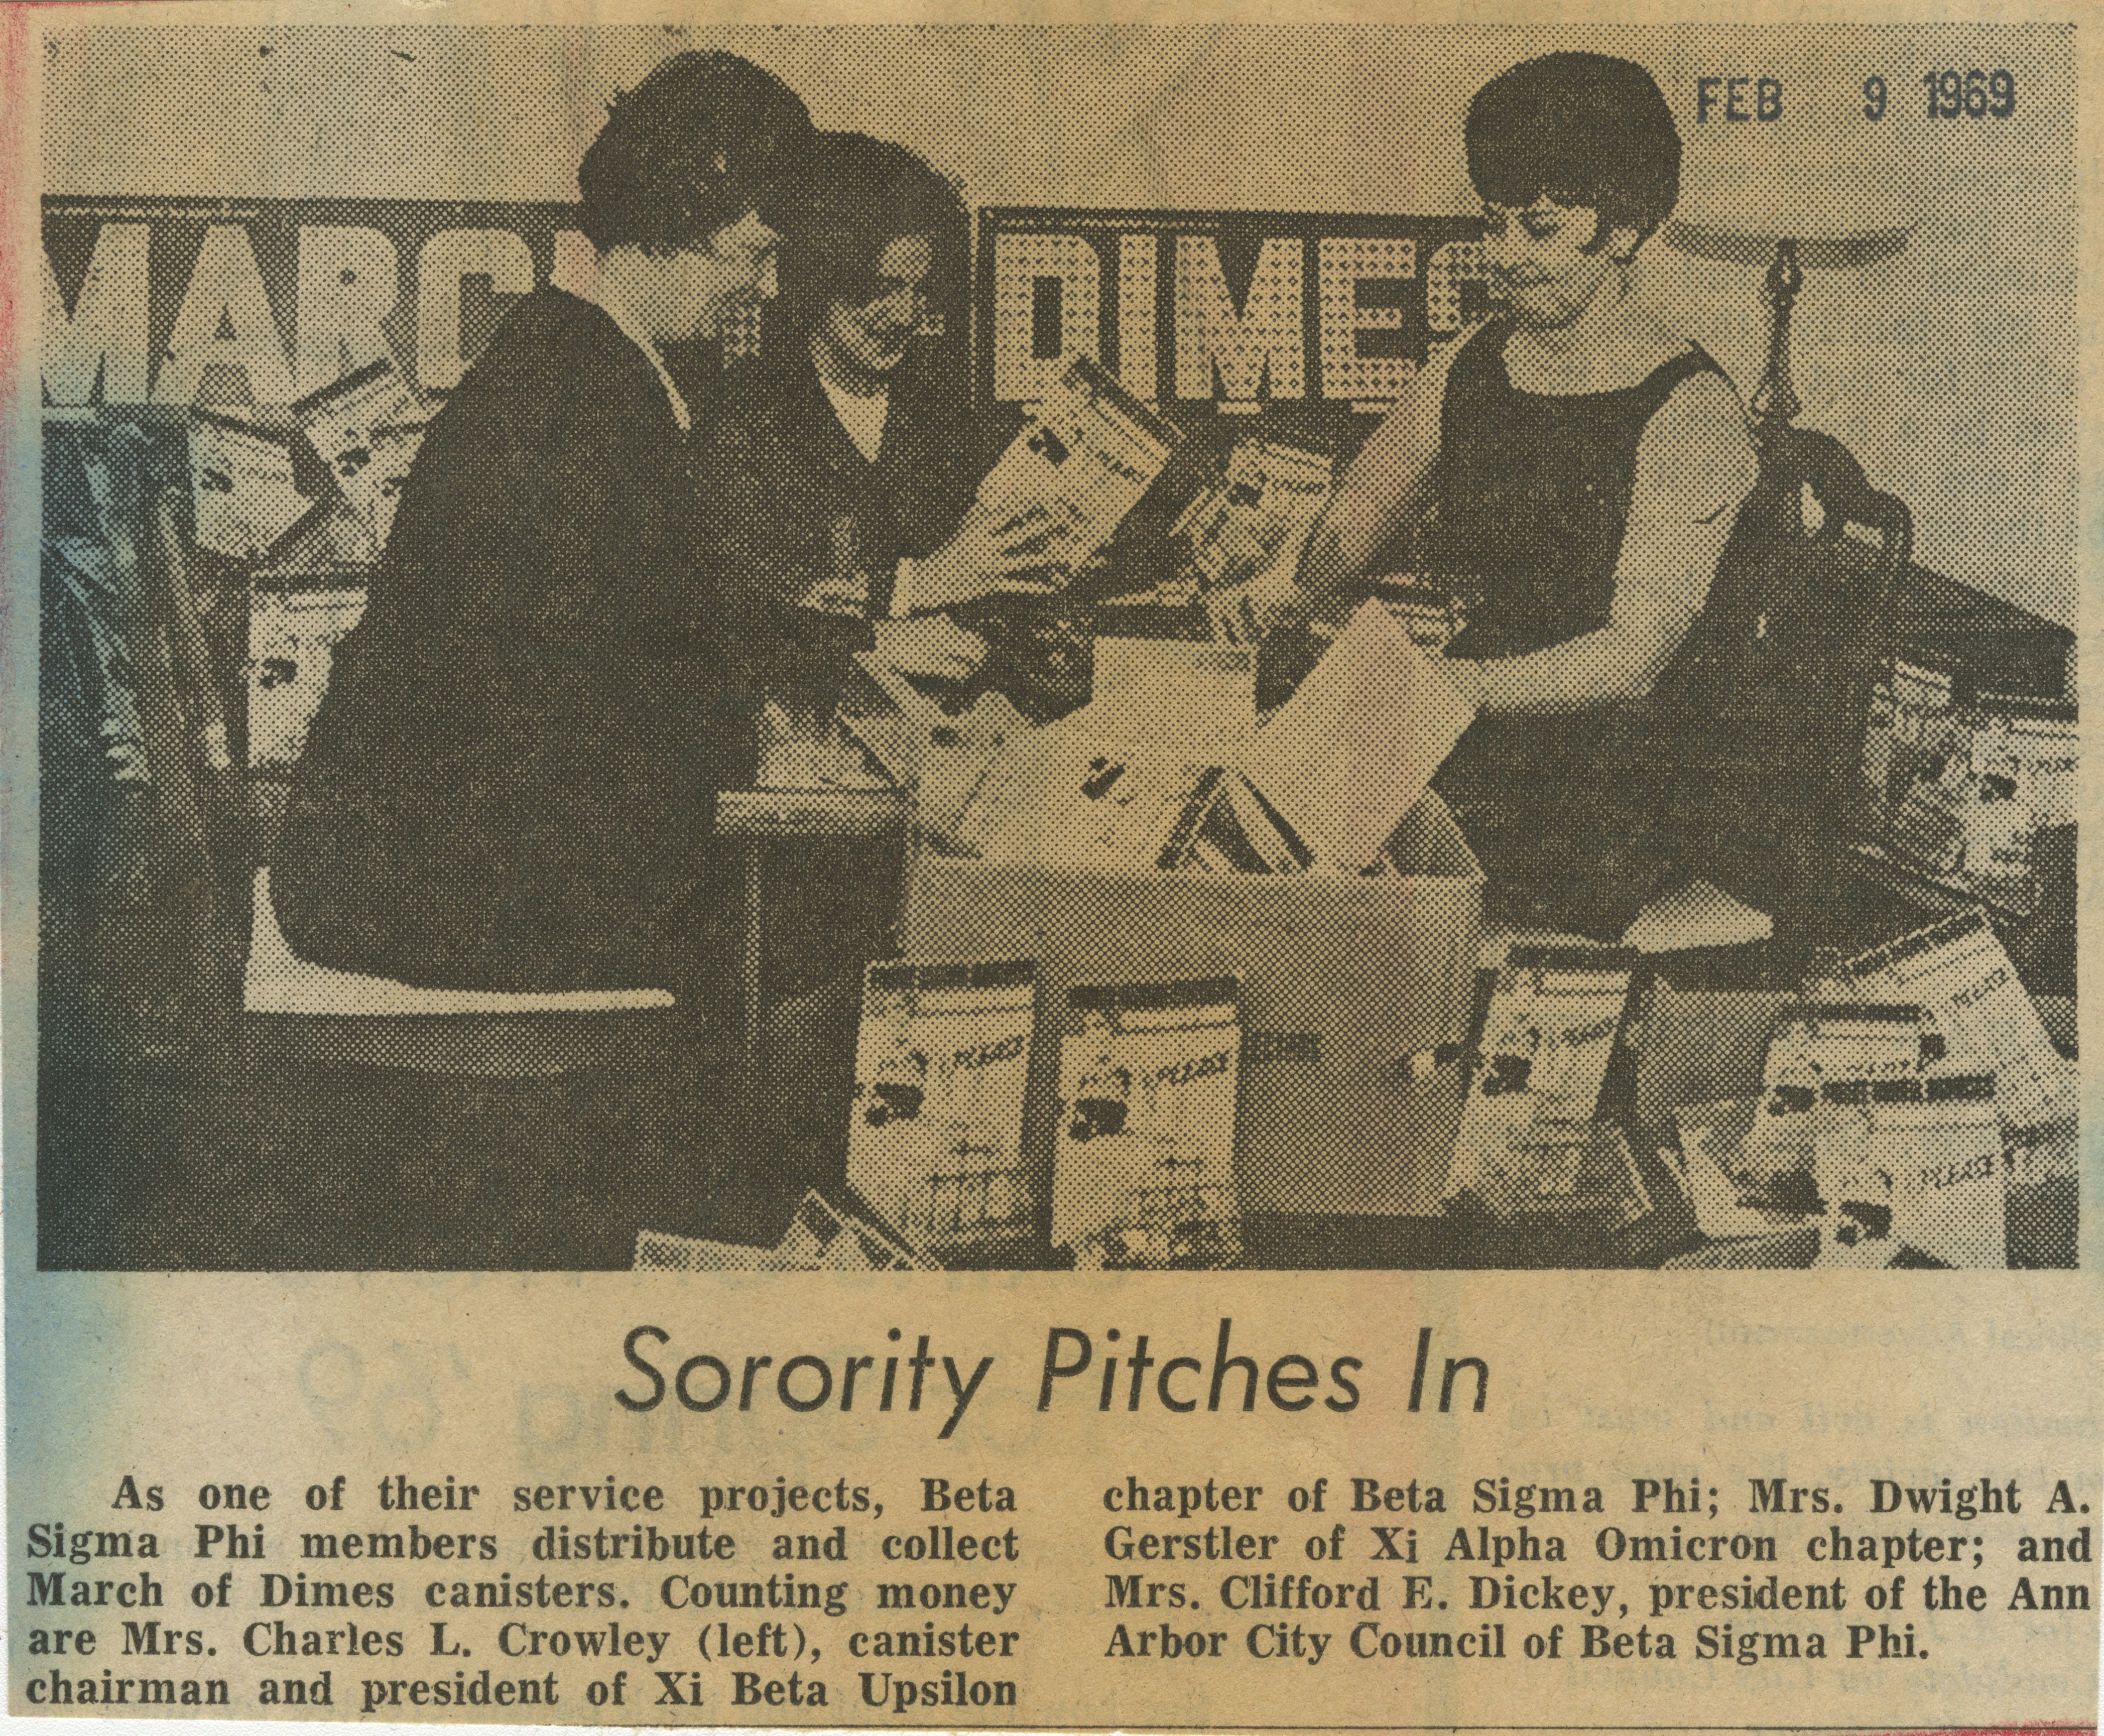 Sorority Pitches In image